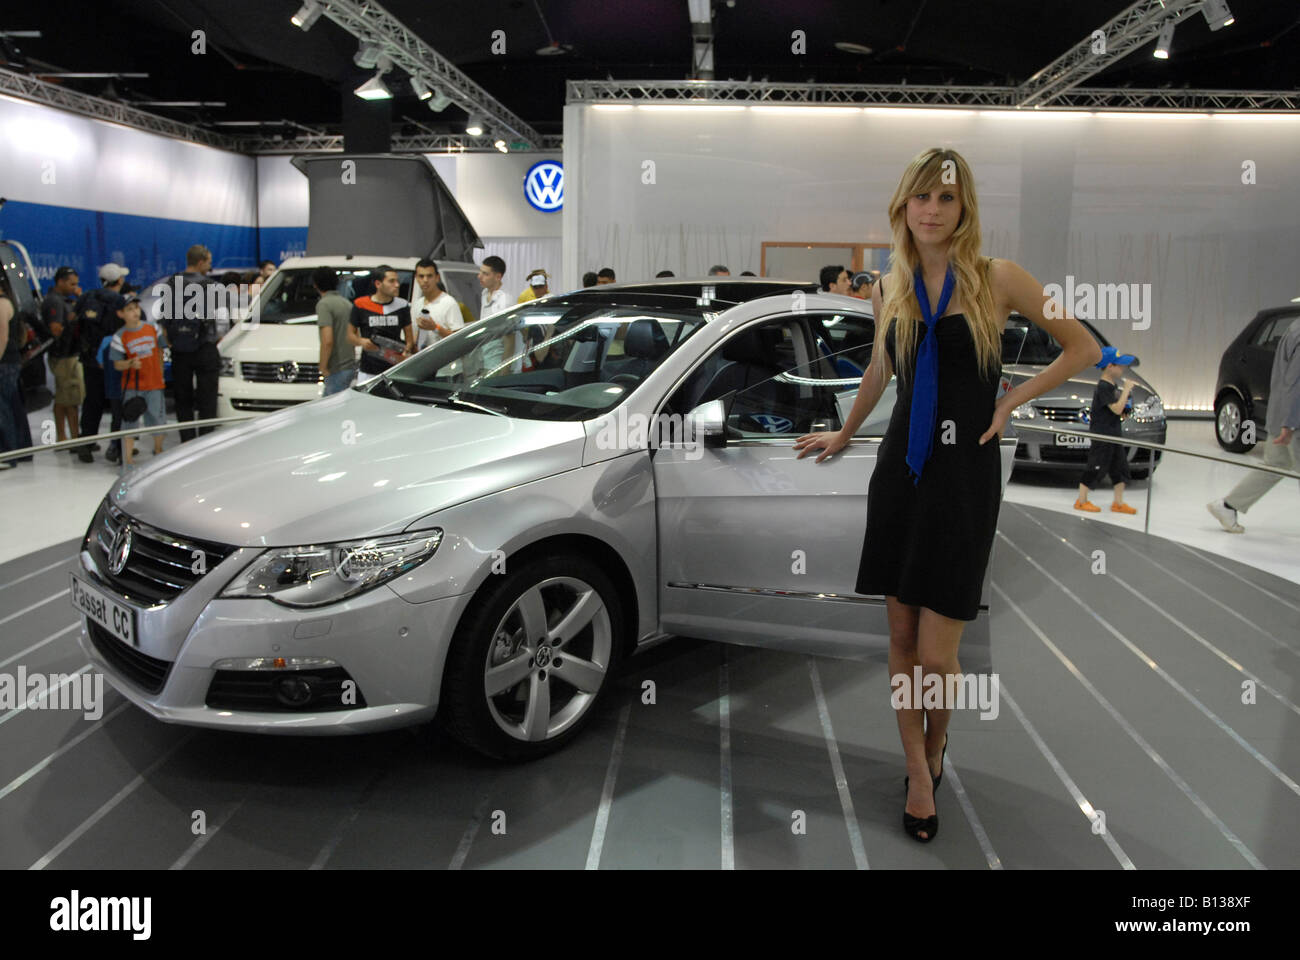 Israel New Model Cars On Display At A Car Show Young Female